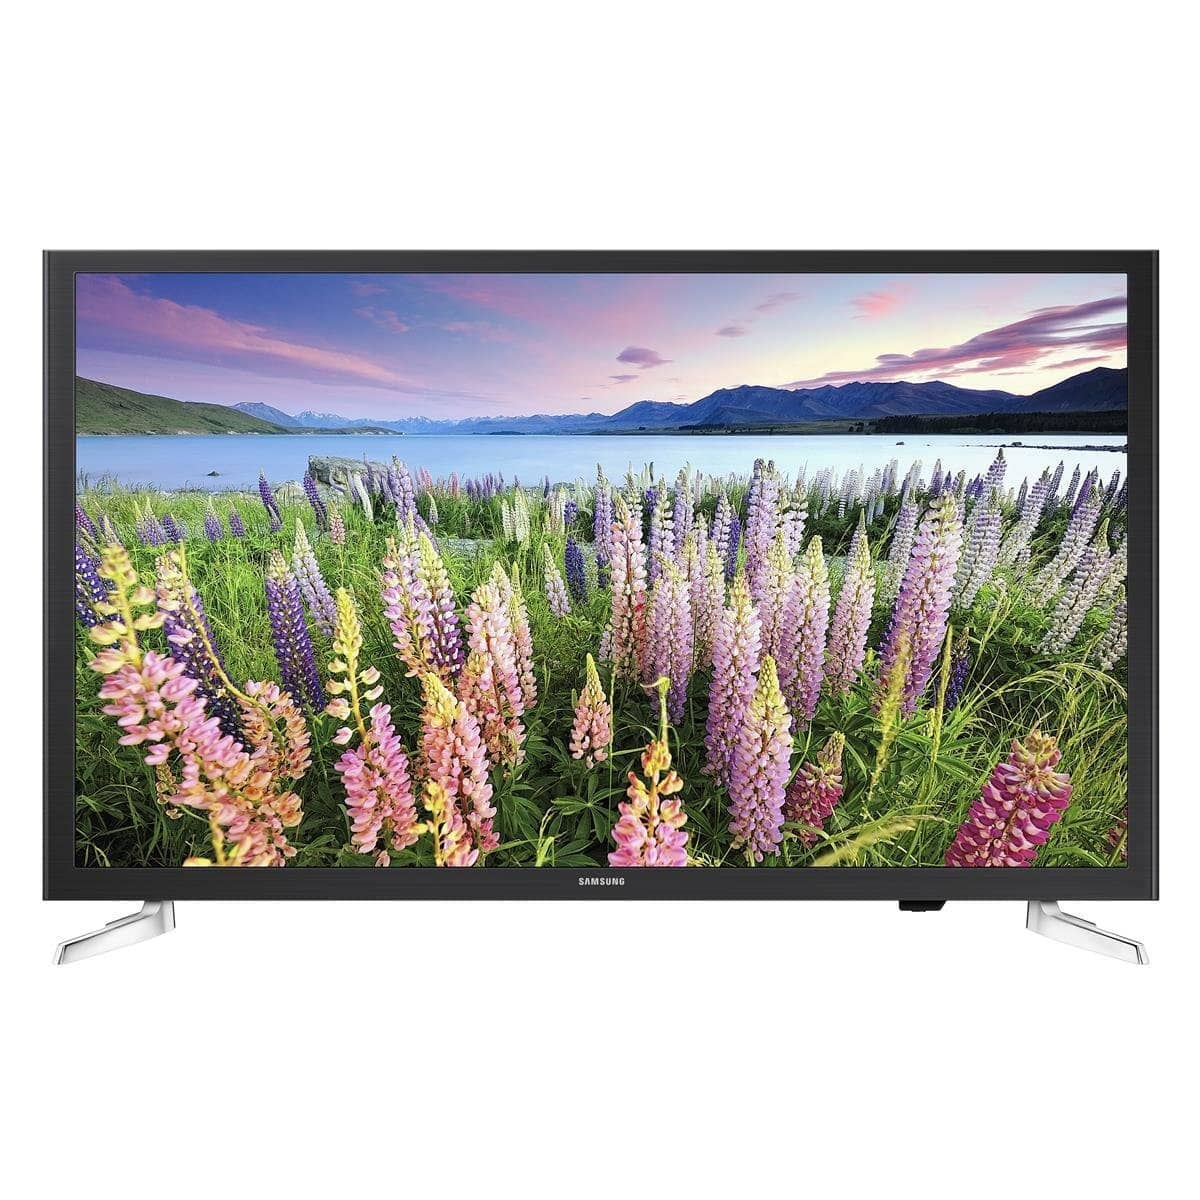 Samsung UN32J5205 32-inch 1080p Smart TV + $100 Dell eGift Card $230 w/ FS